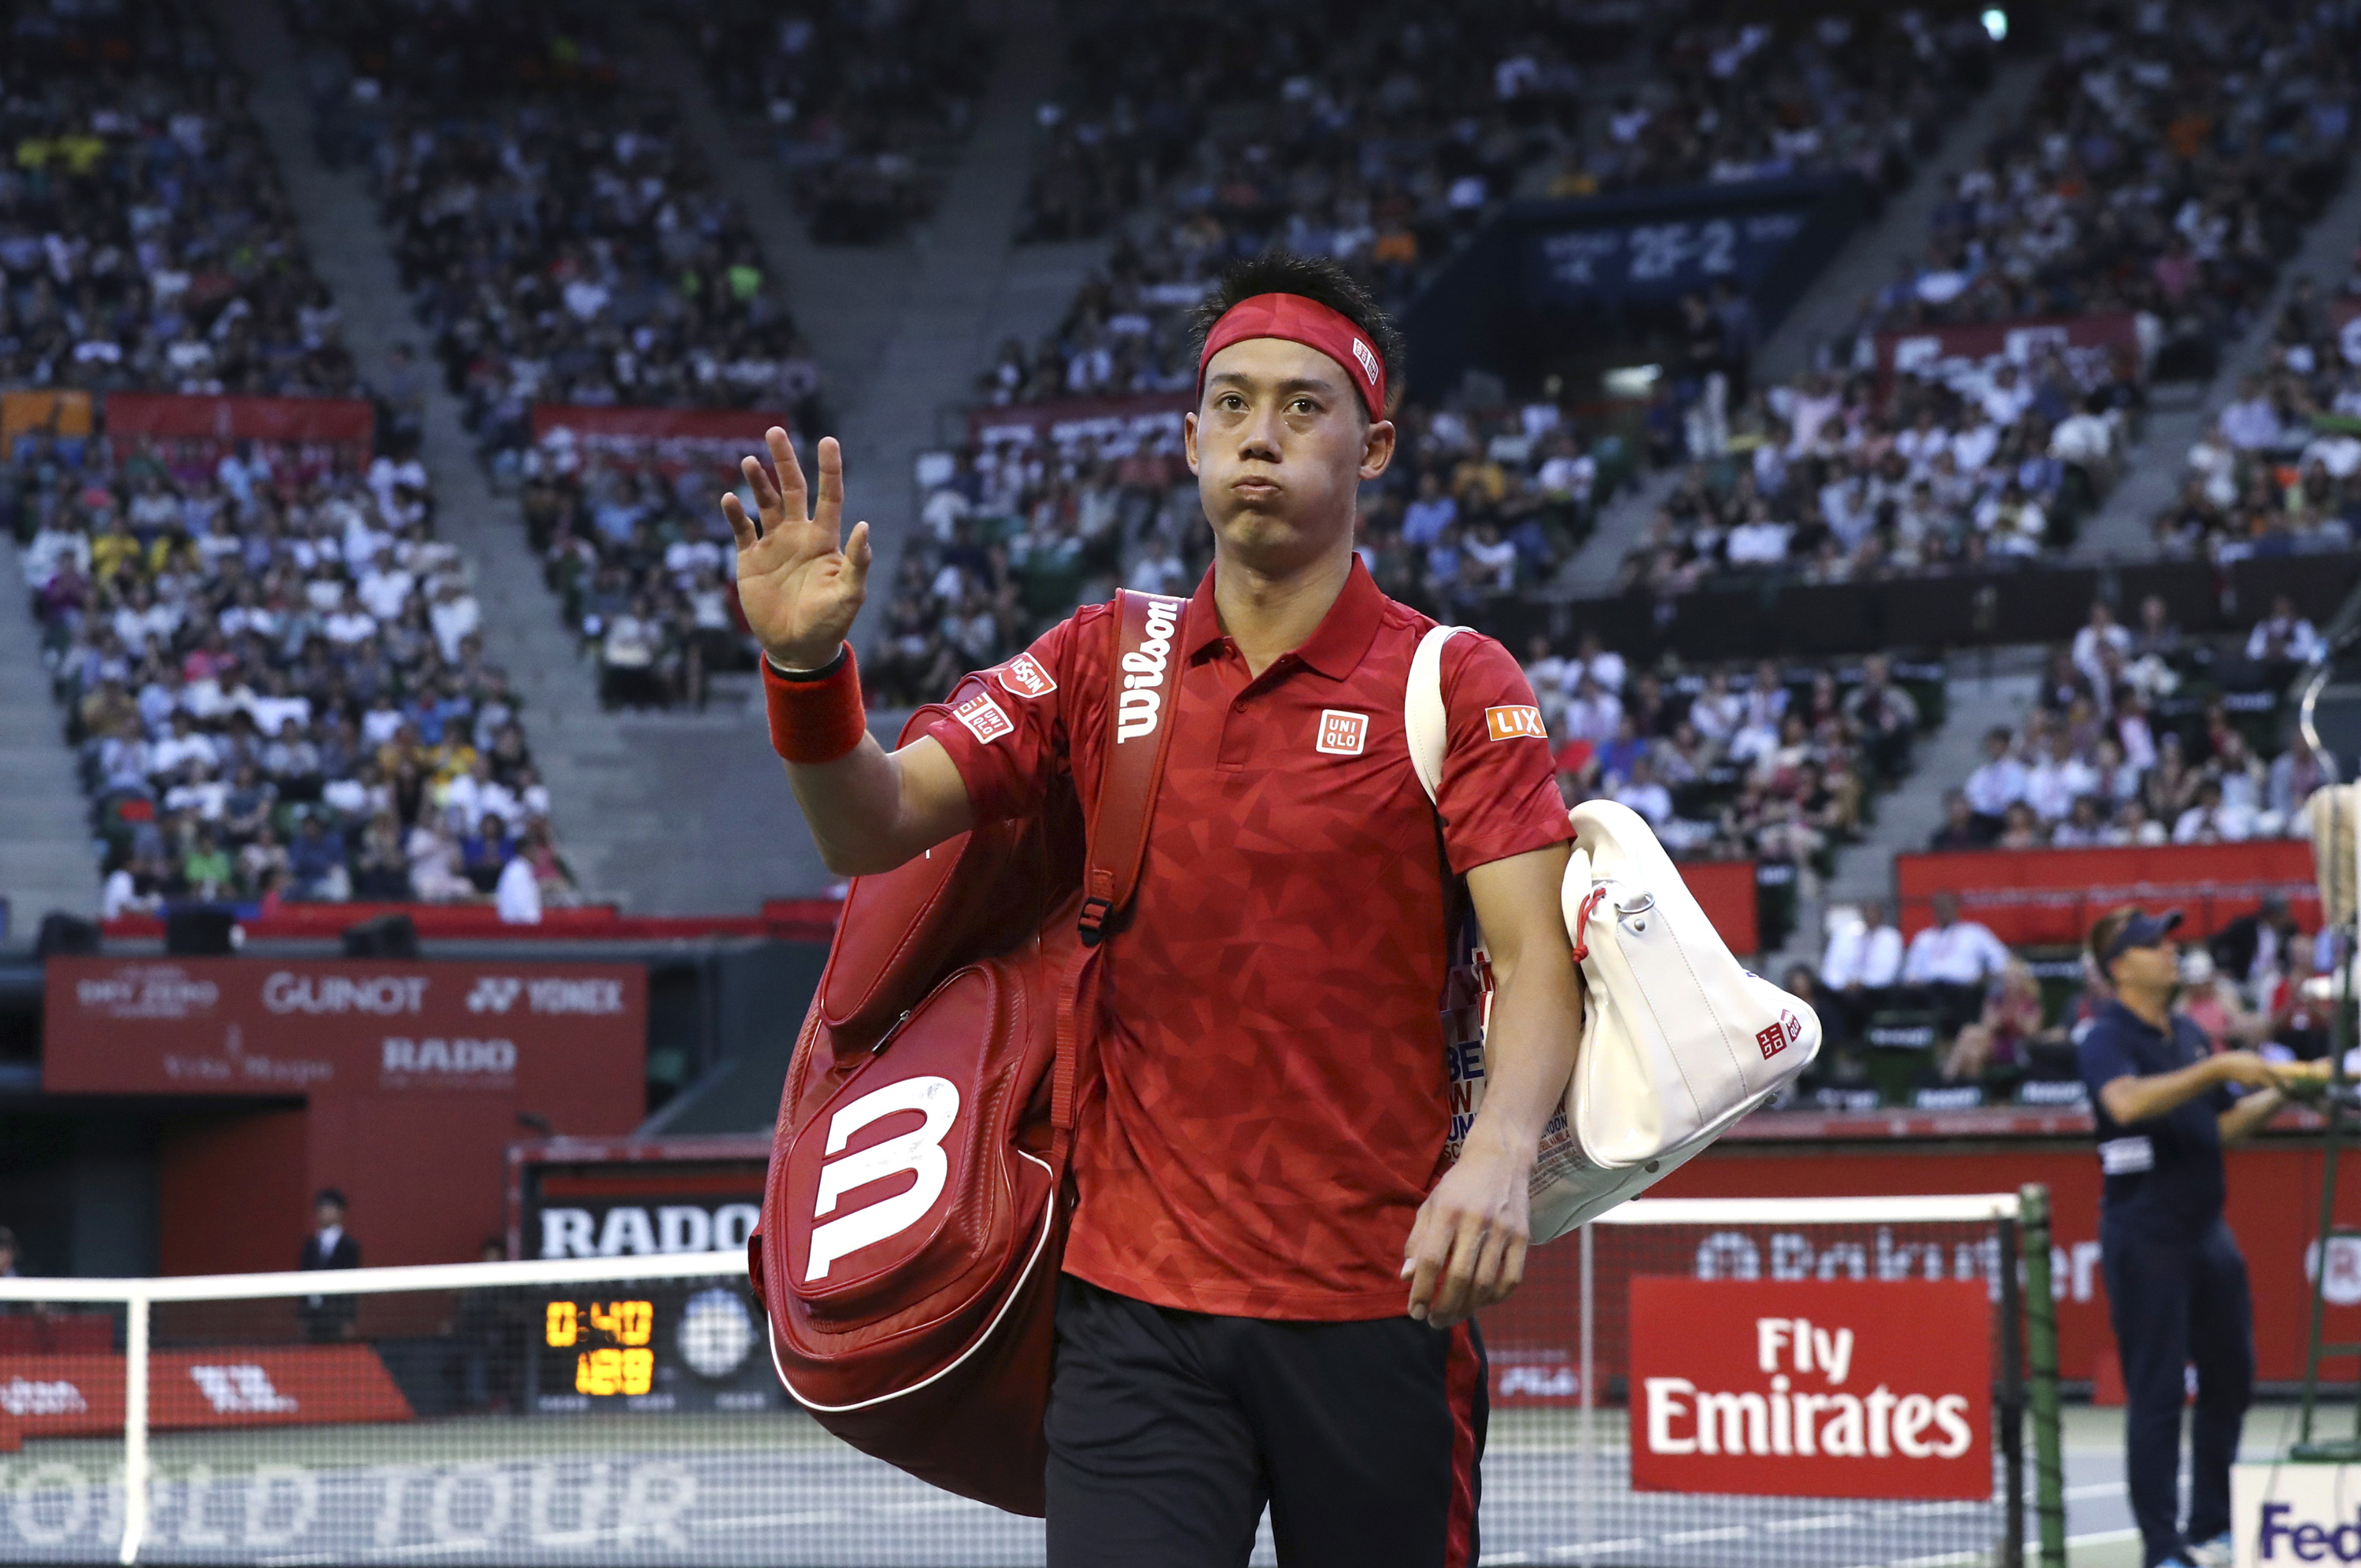 Japan's Kei Nishikori walks away from the center court after he retired from his match against Joao Sousa of Portugal during their singles match at the Japan Open mens tennis tournament in Tokyo, Wednesday, Oct. 5, 2016. (AP Photo/Eugene Hoshiko)